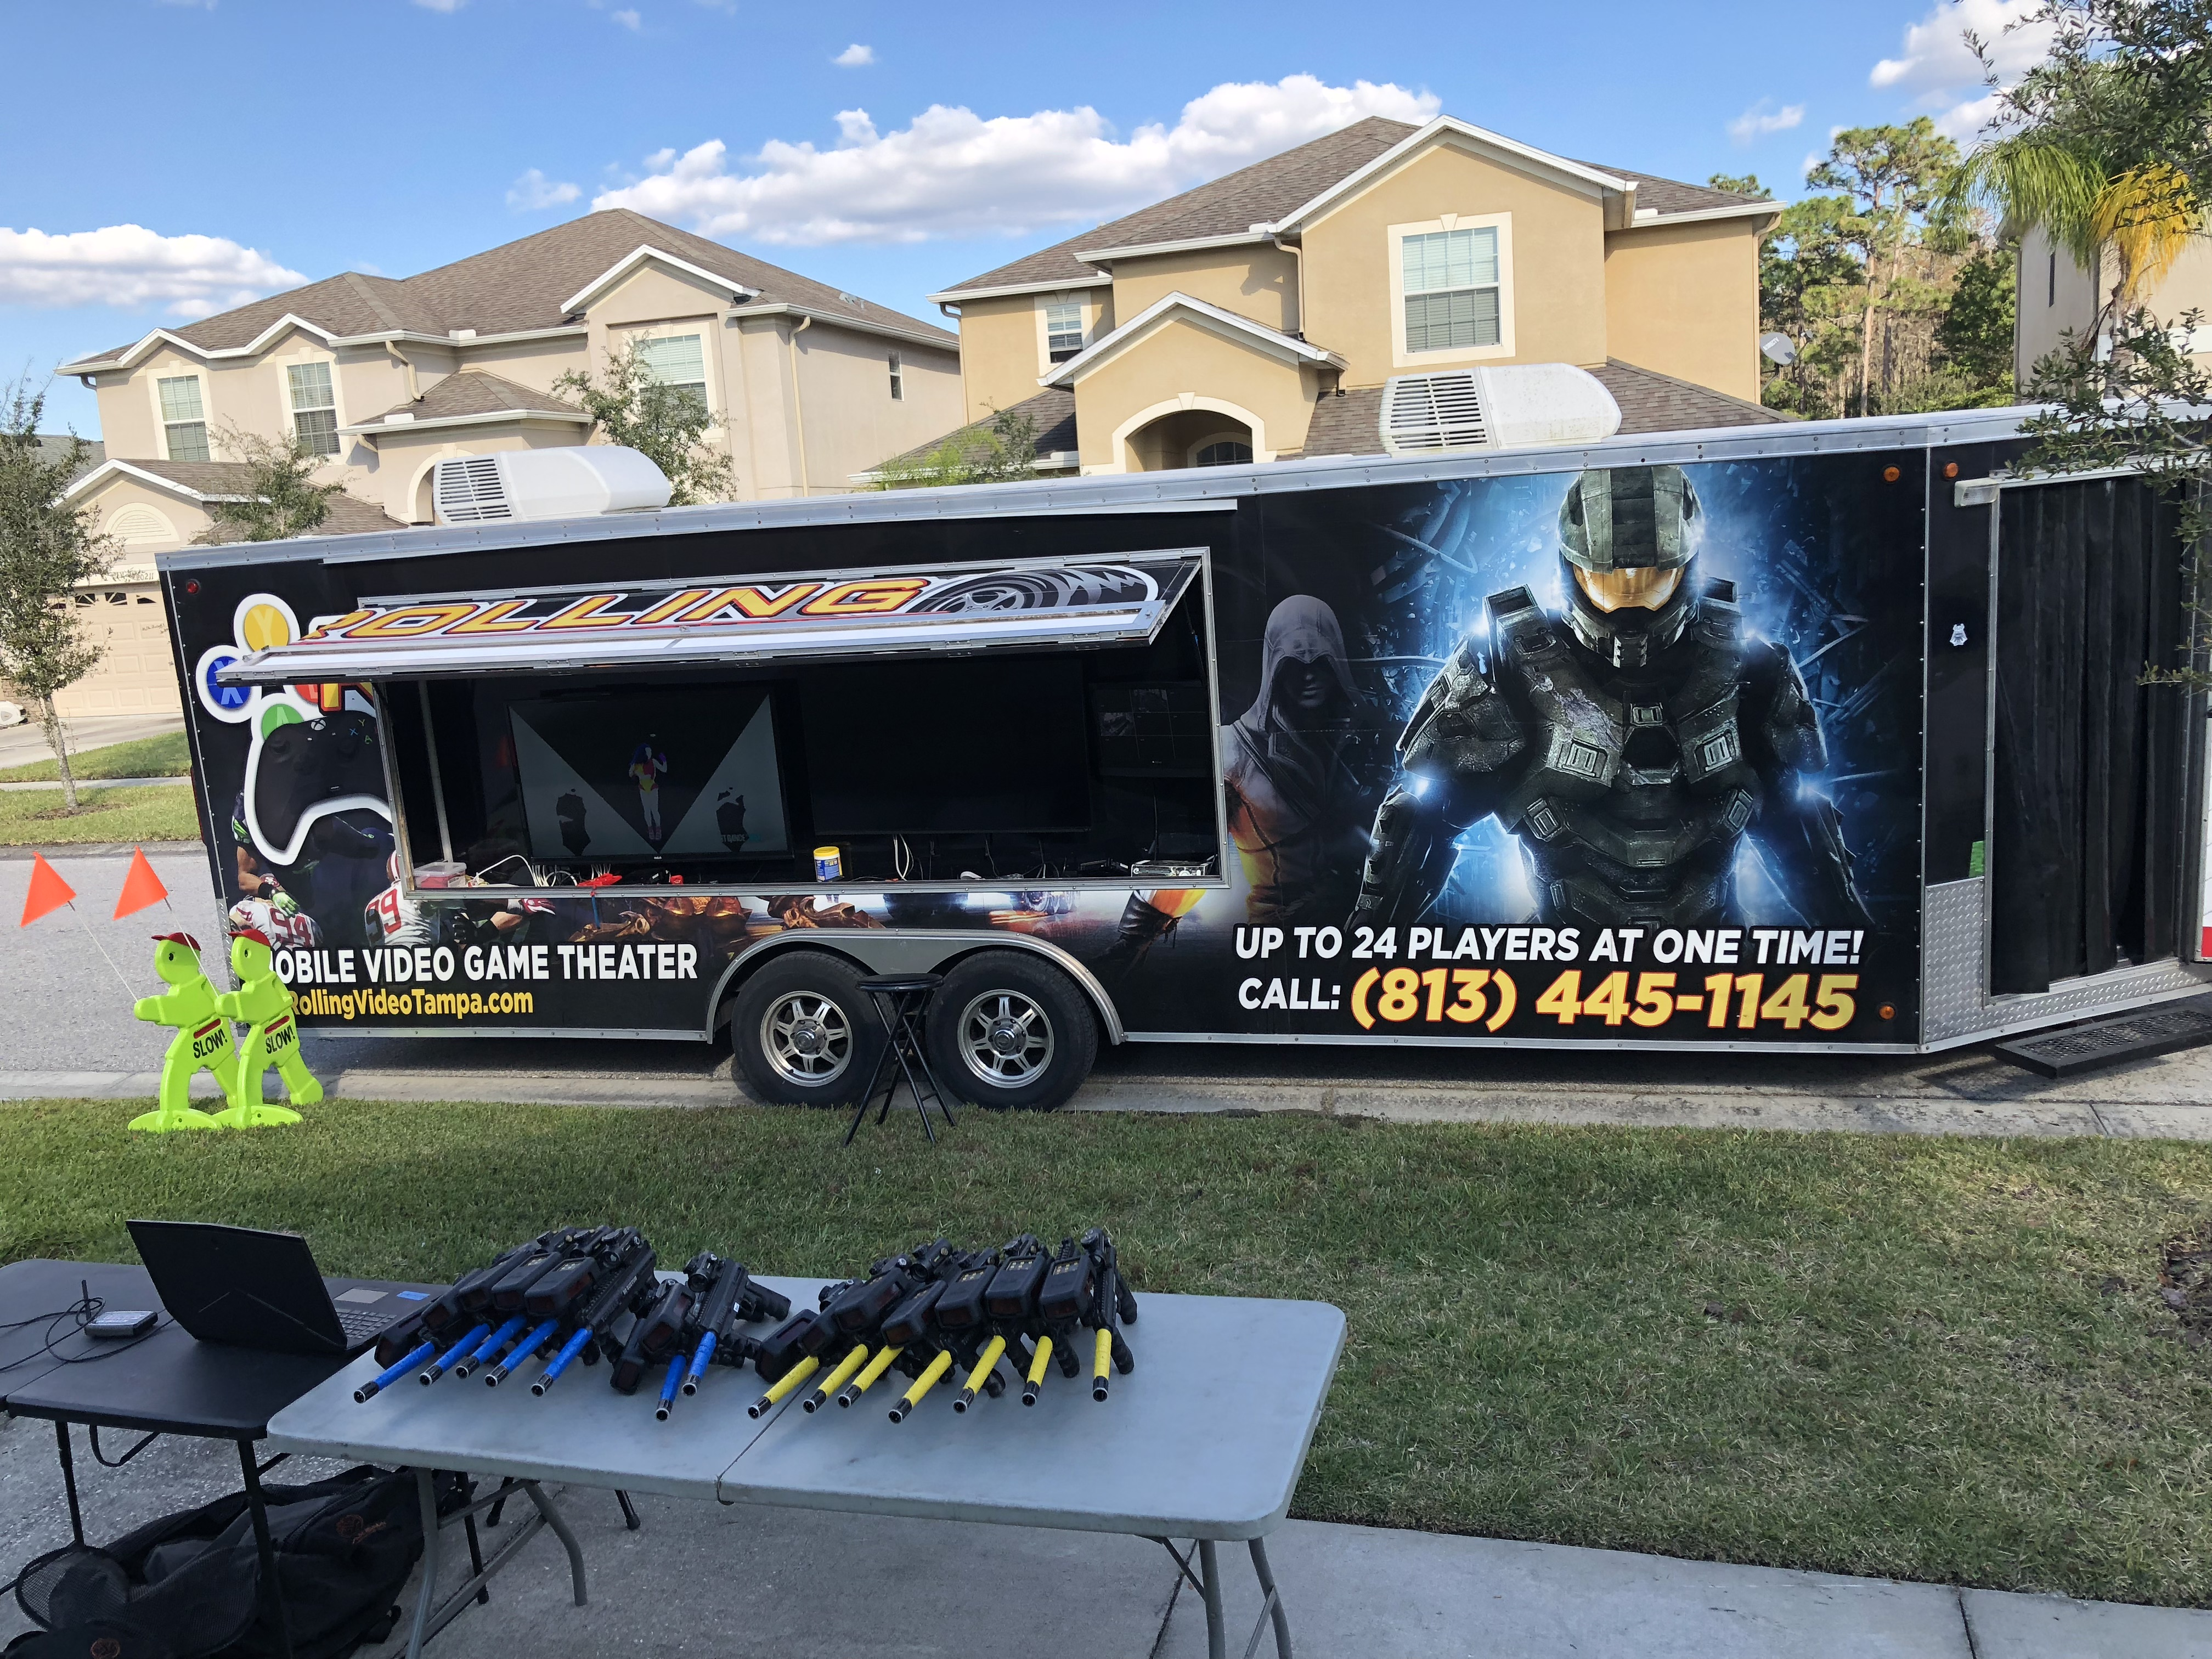 Throw A Mobile Video Game Party And Add On Laser Tag